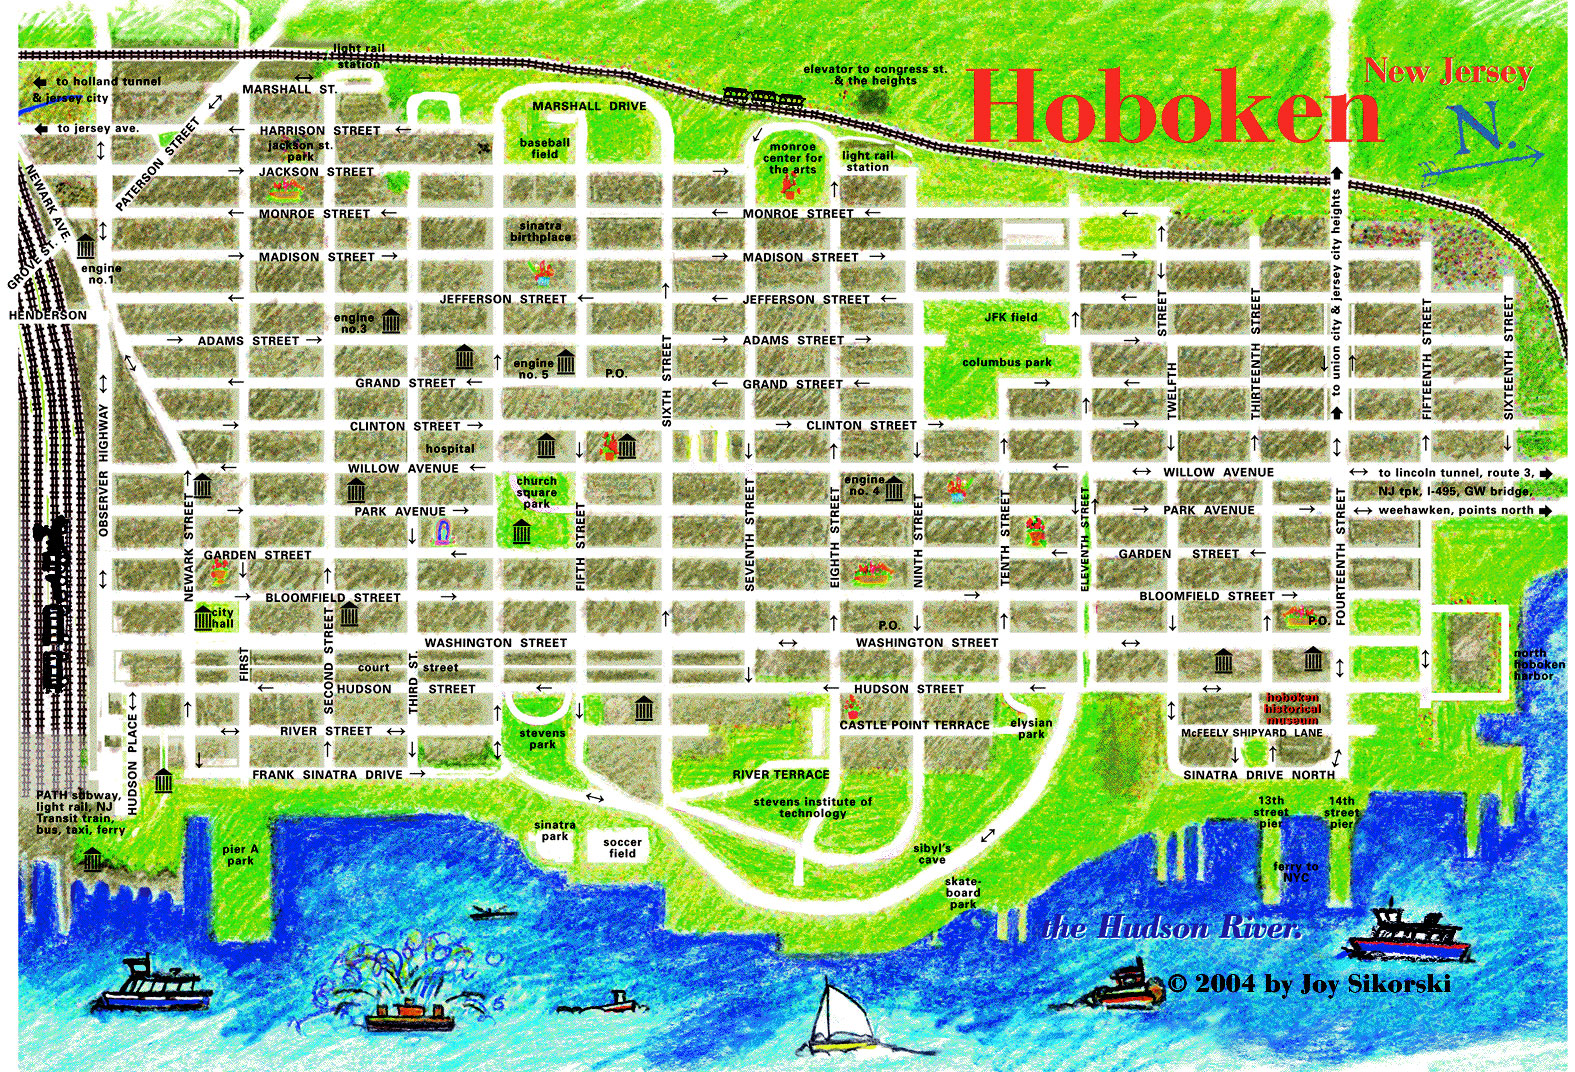 Hoboken-Walking-Tour-map pic